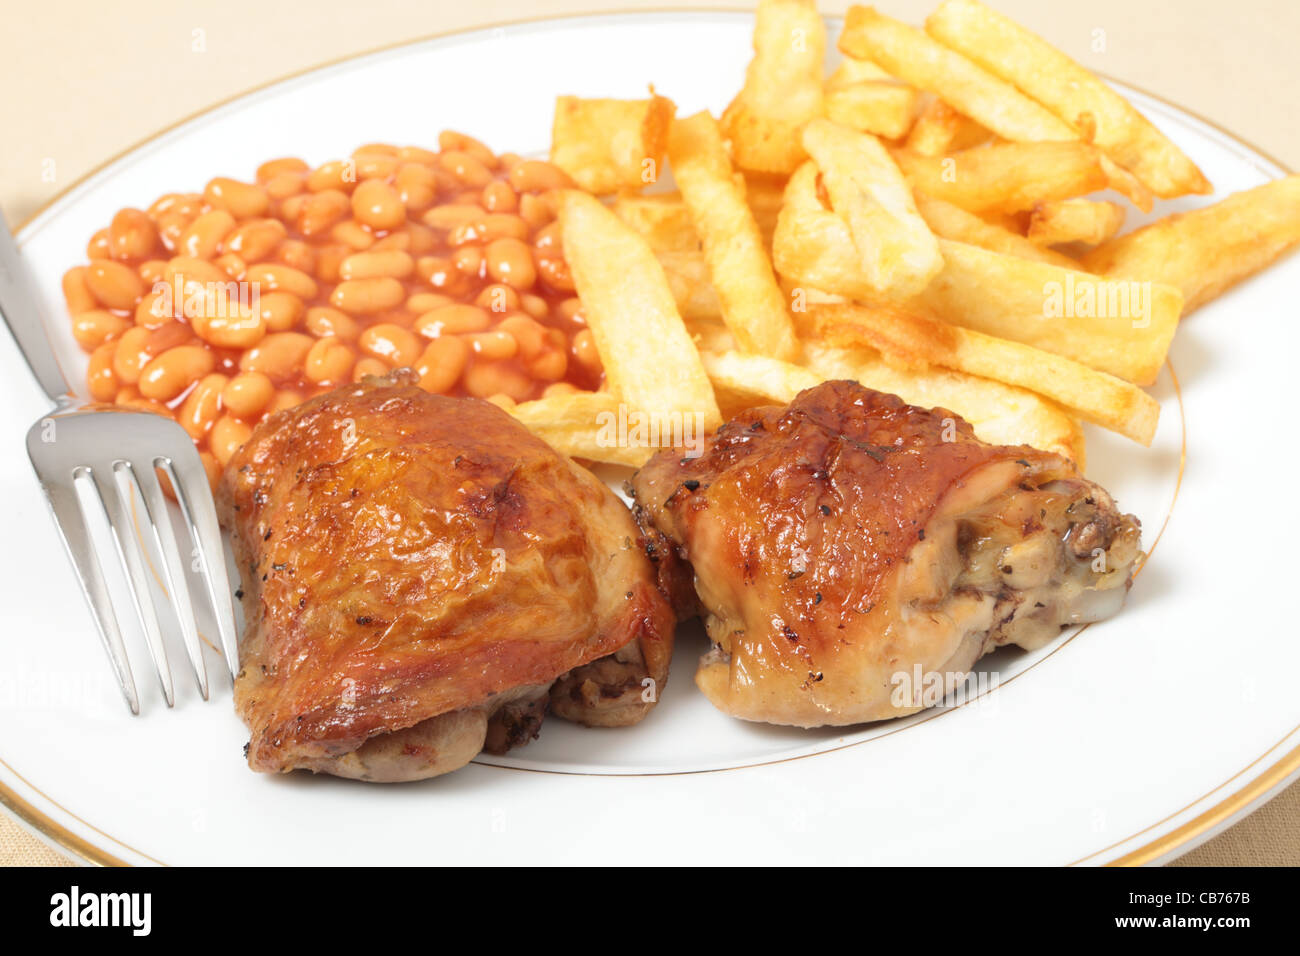 A meal of lemon chicken with french fries and baked beans - Stock Image